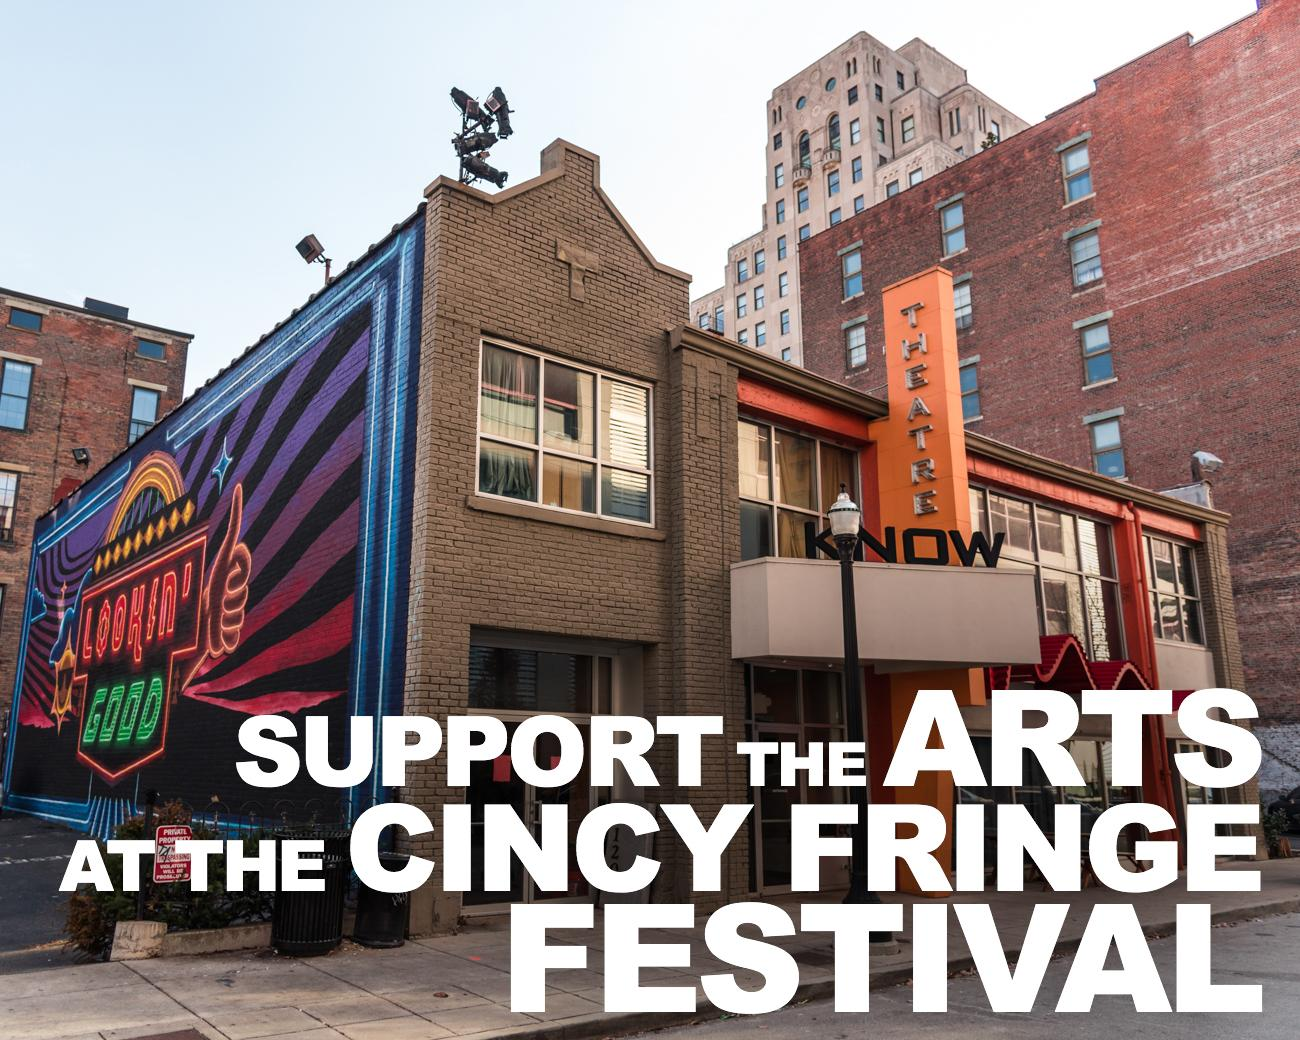 The Cincy Fringe Fest runs May 31 – June 11. And for those who've experience Fringe in the past, then you know it's all about keeping things weird... but in the best way possible. Ps: The Know is located at 1120 Jackson Street (45202). / Image: Phil Armstrong, Cincinnati Refined // Published: 3.11.17